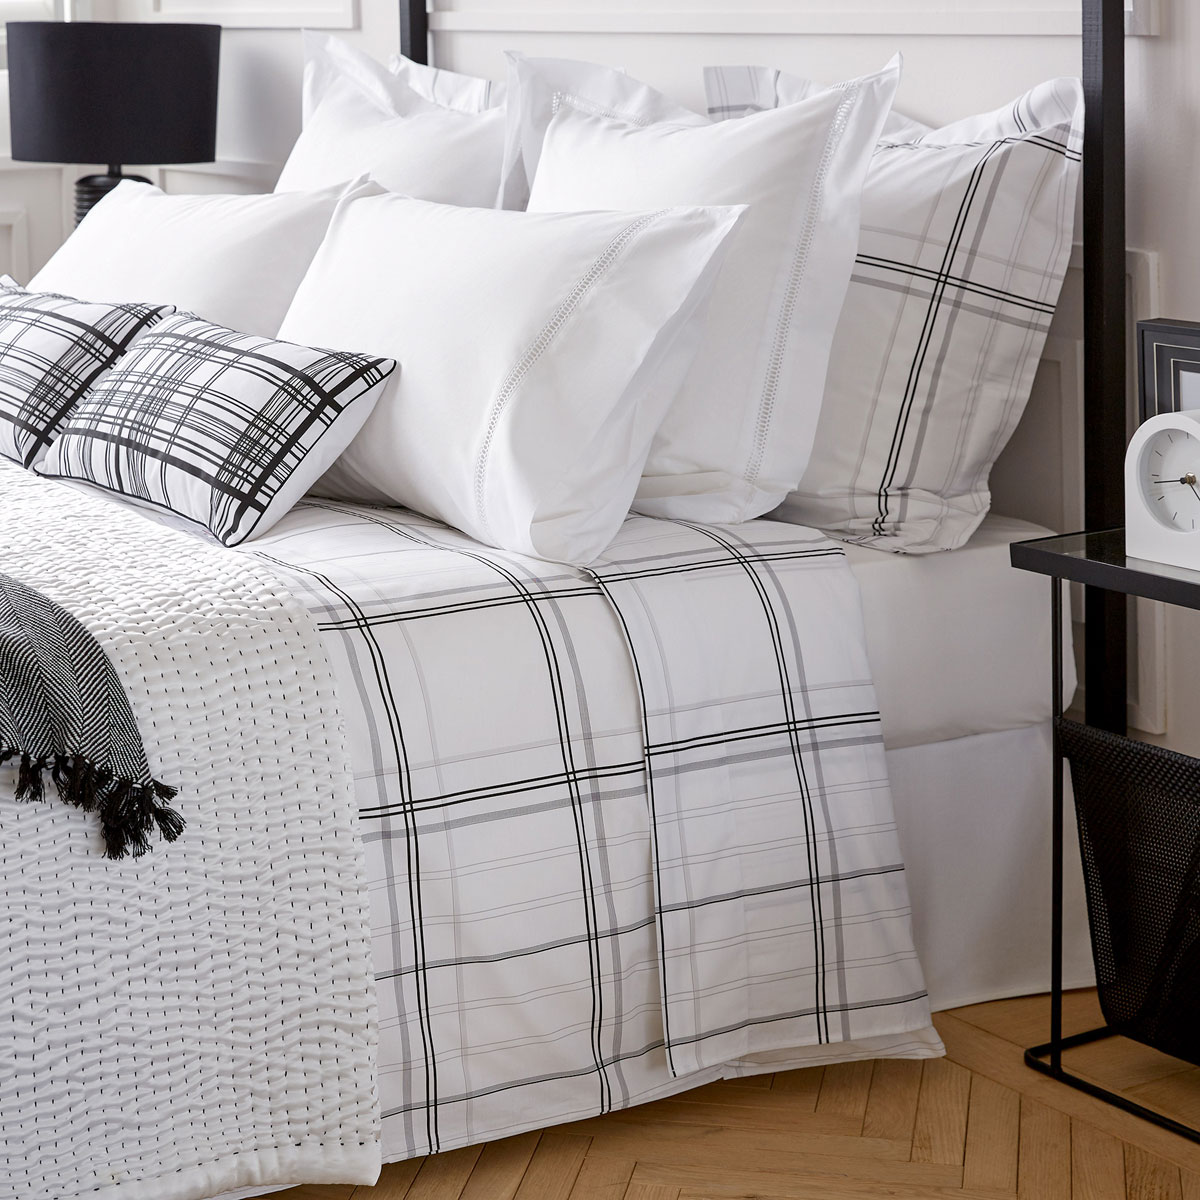 tendance d co carreaux blanc et noir. Black Bedroom Furniture Sets. Home Design Ideas